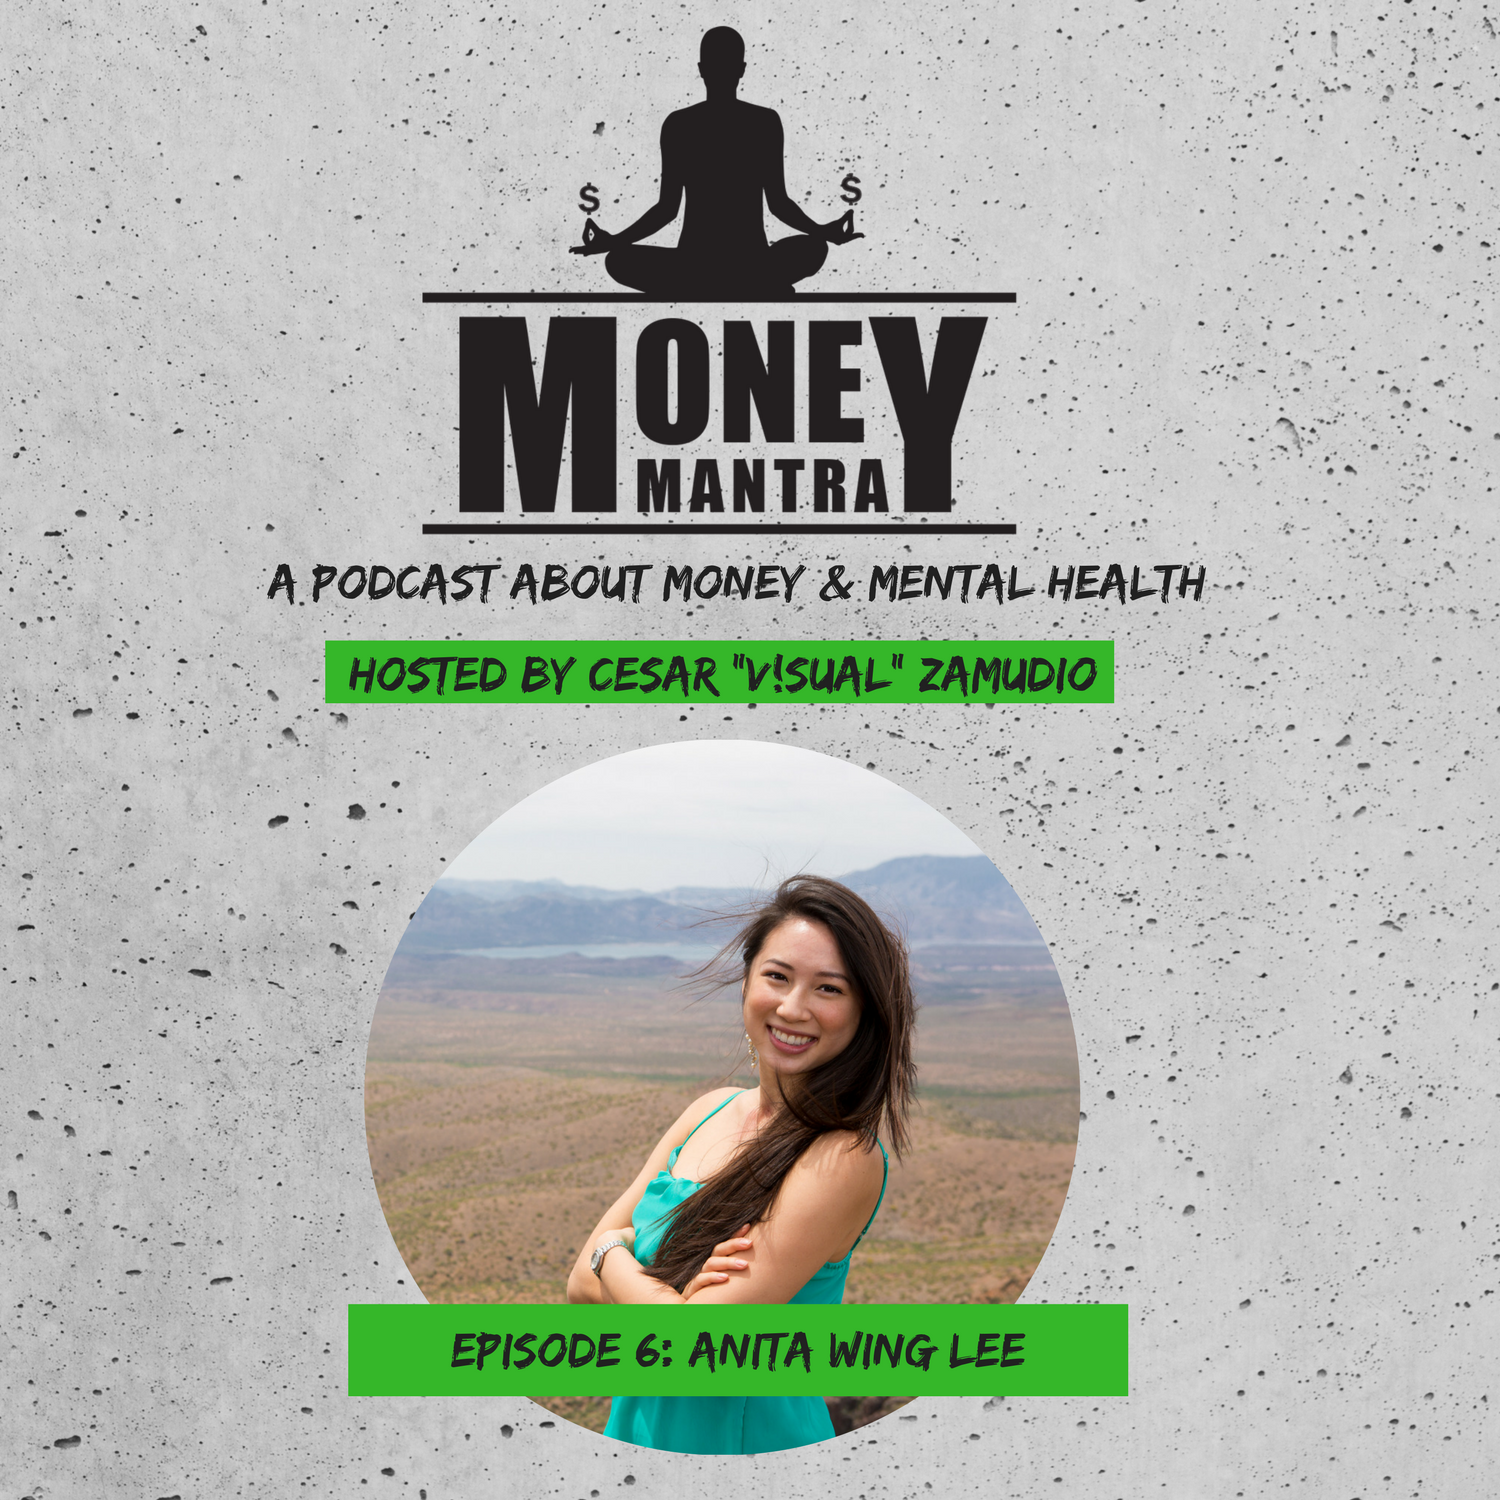 International broadcaster, - Periscoper, Motivational Speaker, Life Coach and Humanitarian Anita Wing Lee talks travel, entrepreneurship and helping others create revenue streams by doing what they love